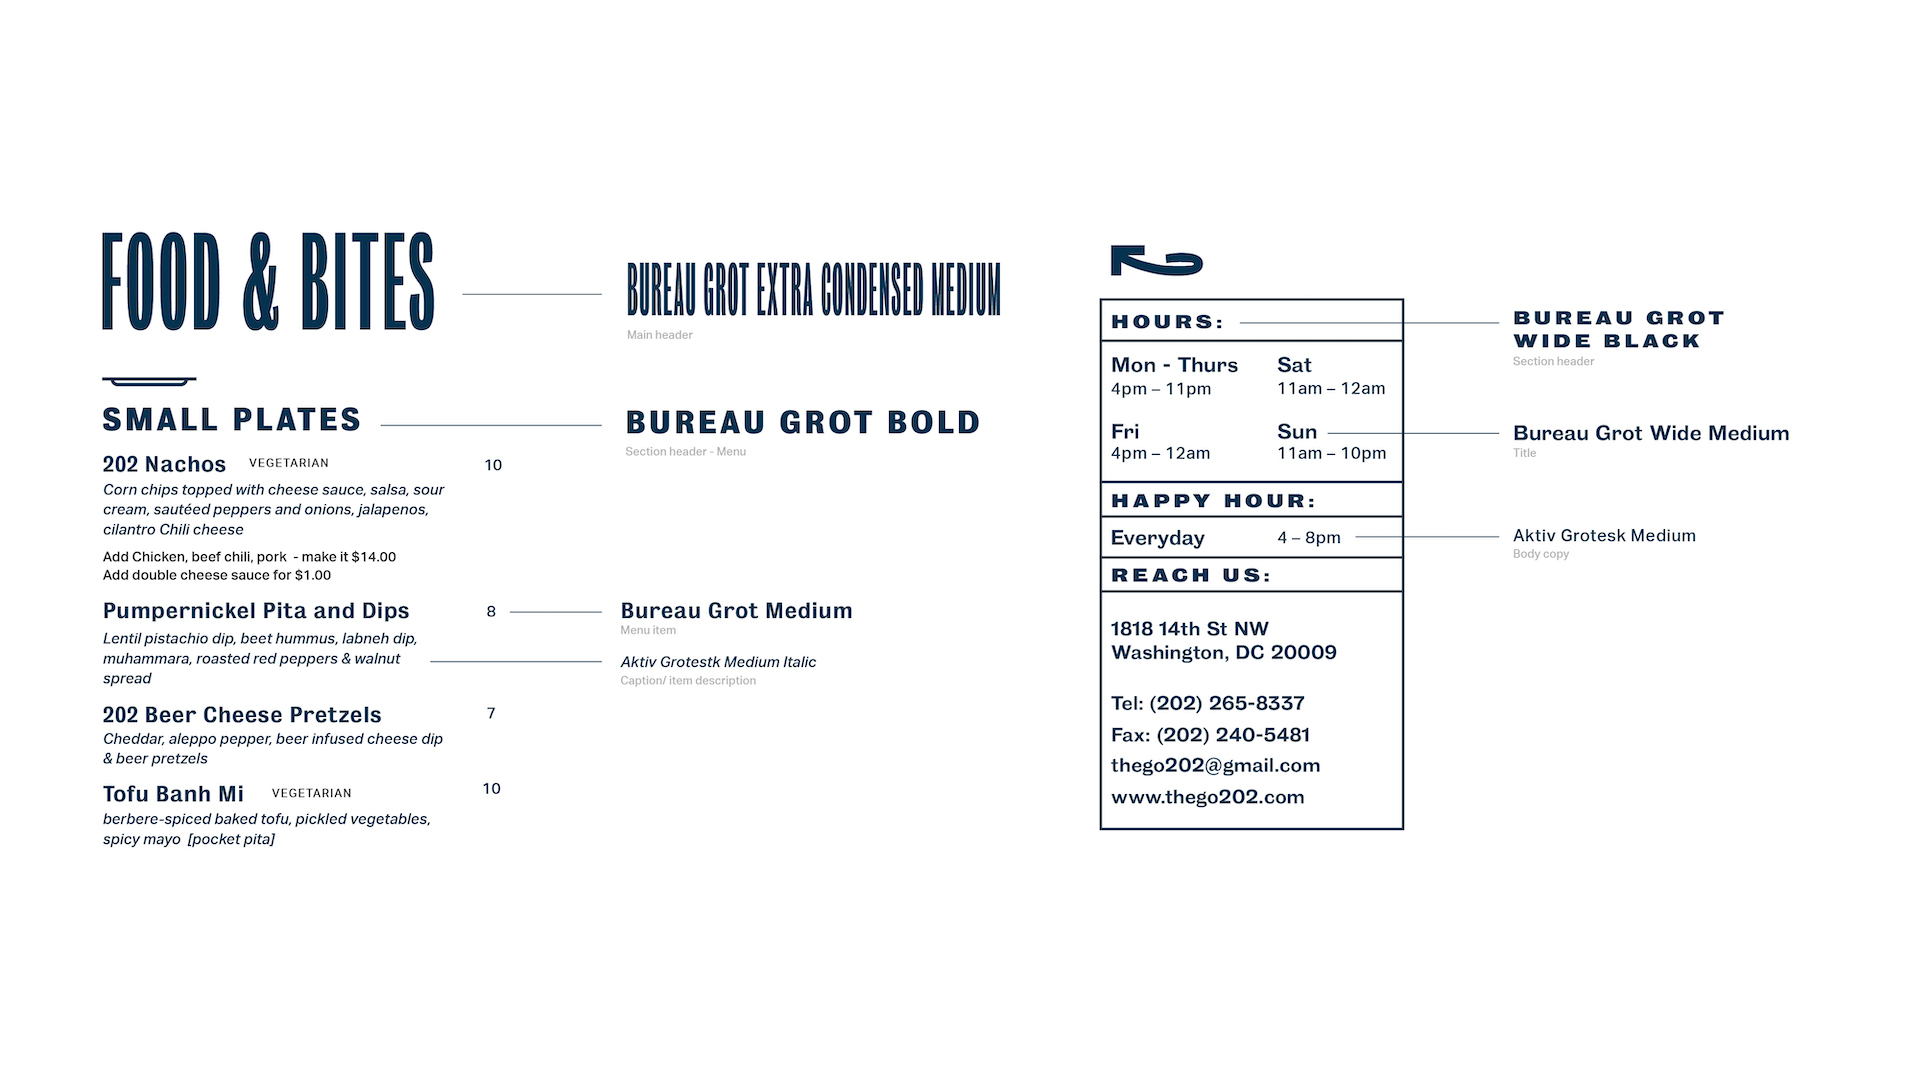 Font dissection of the food menu and the restaurant's business card